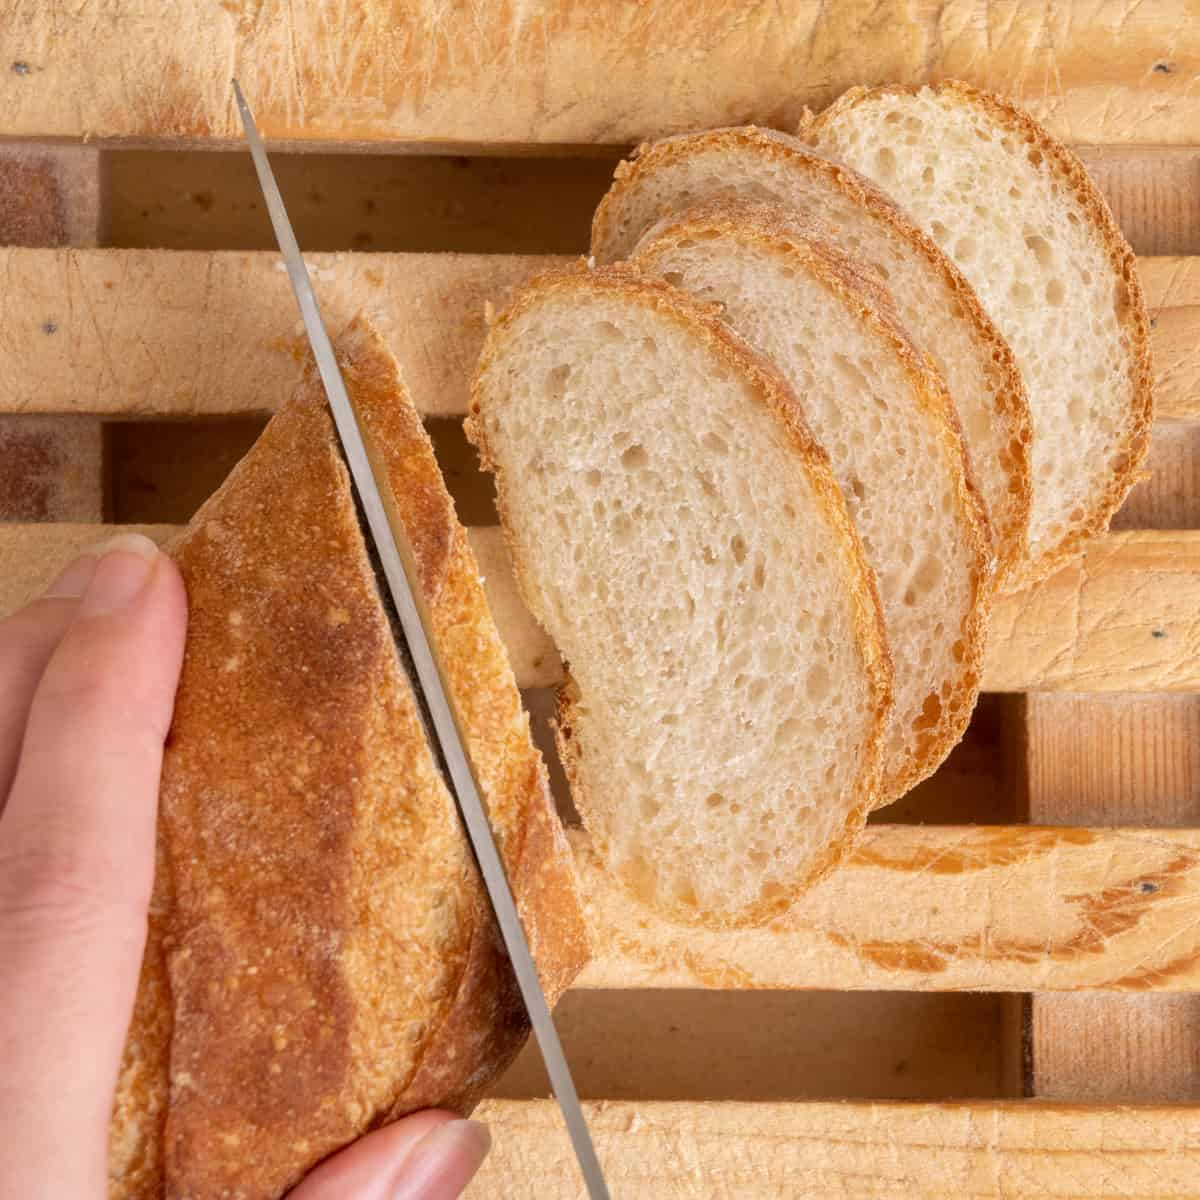 A baguette is sliced into thin diagonal slices.